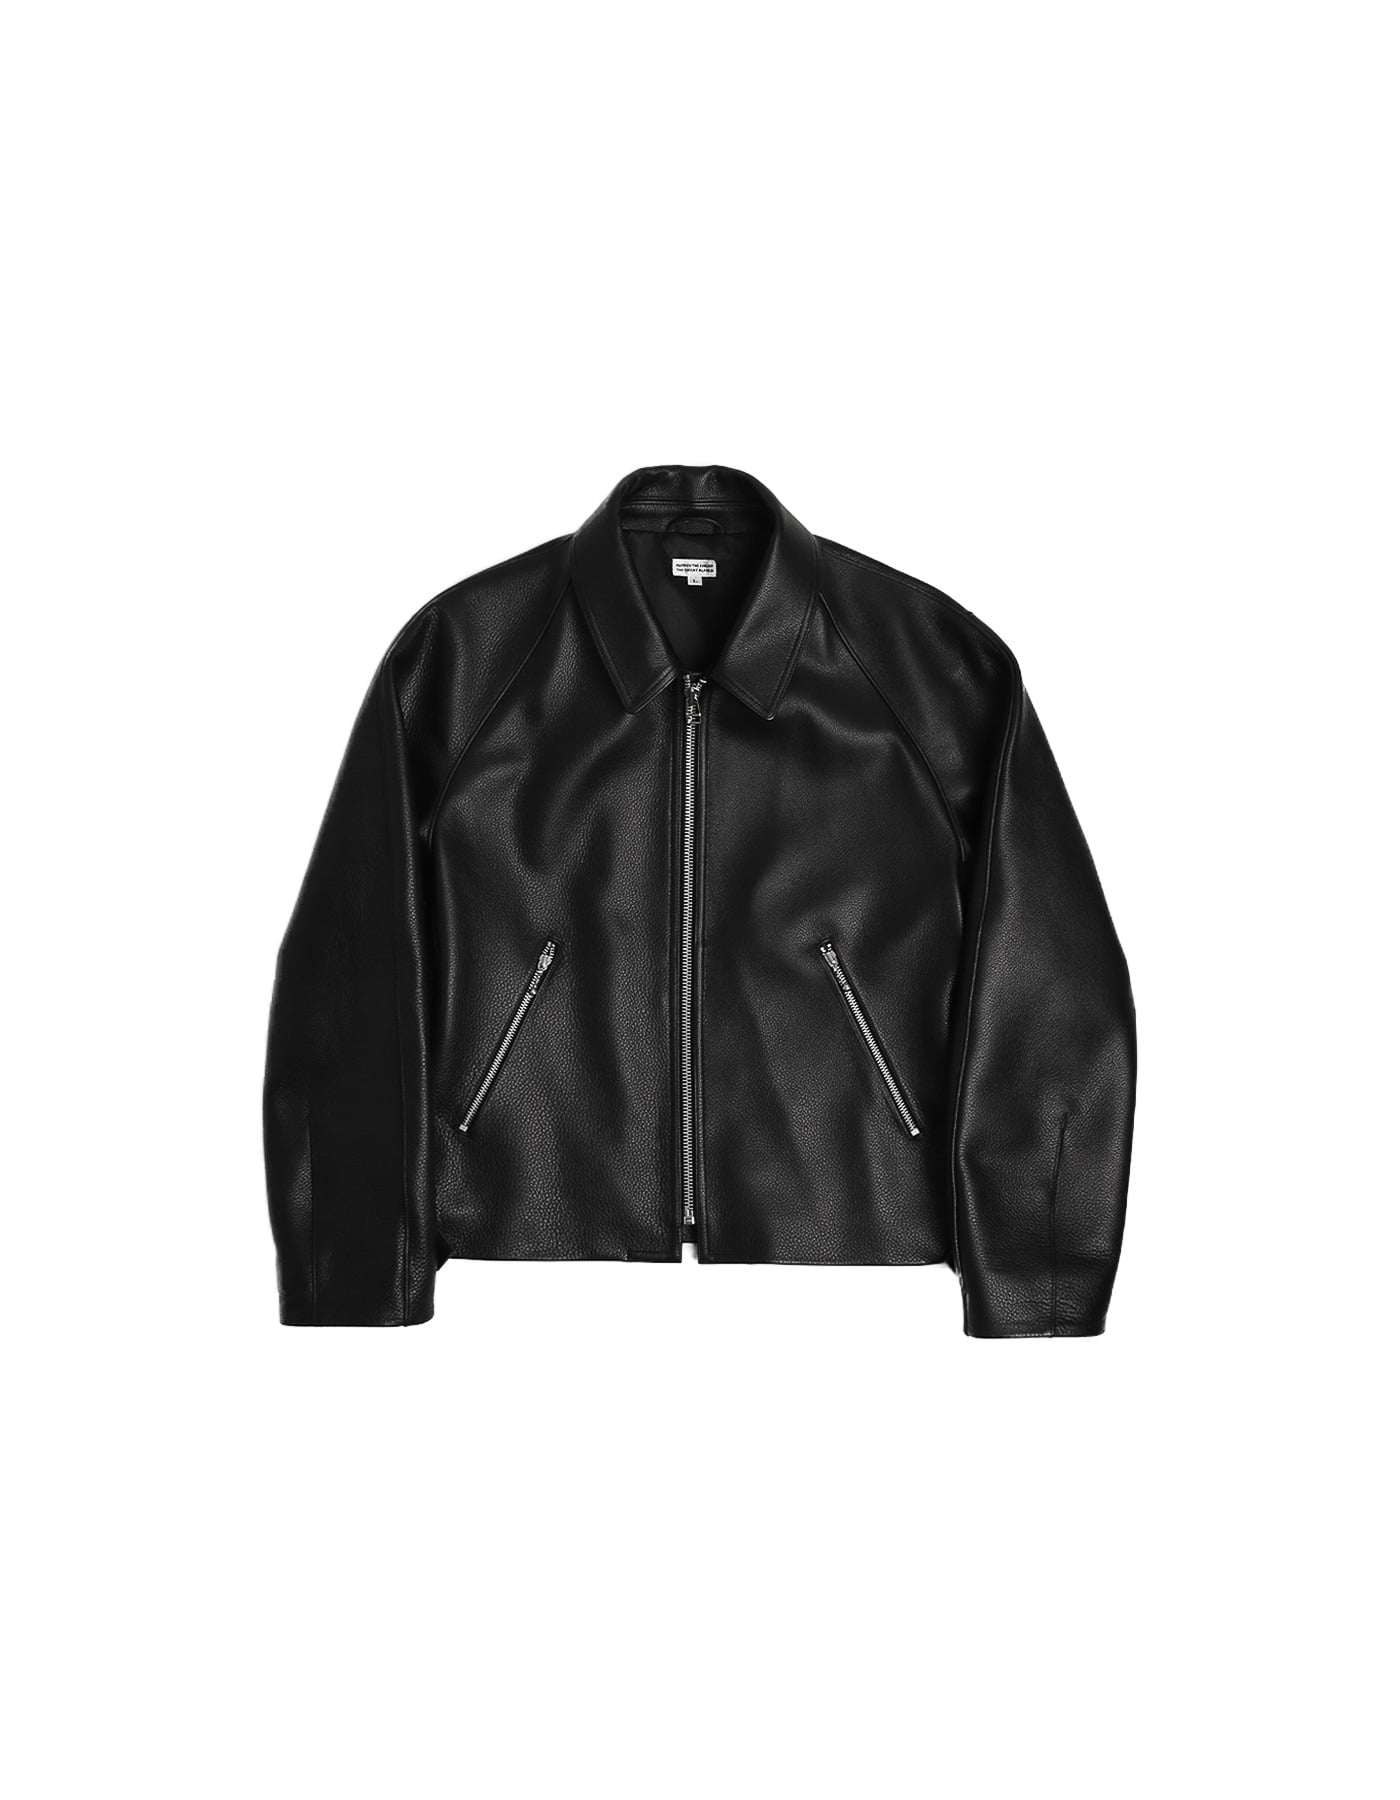 FRED RIDER JACKET / BLACK